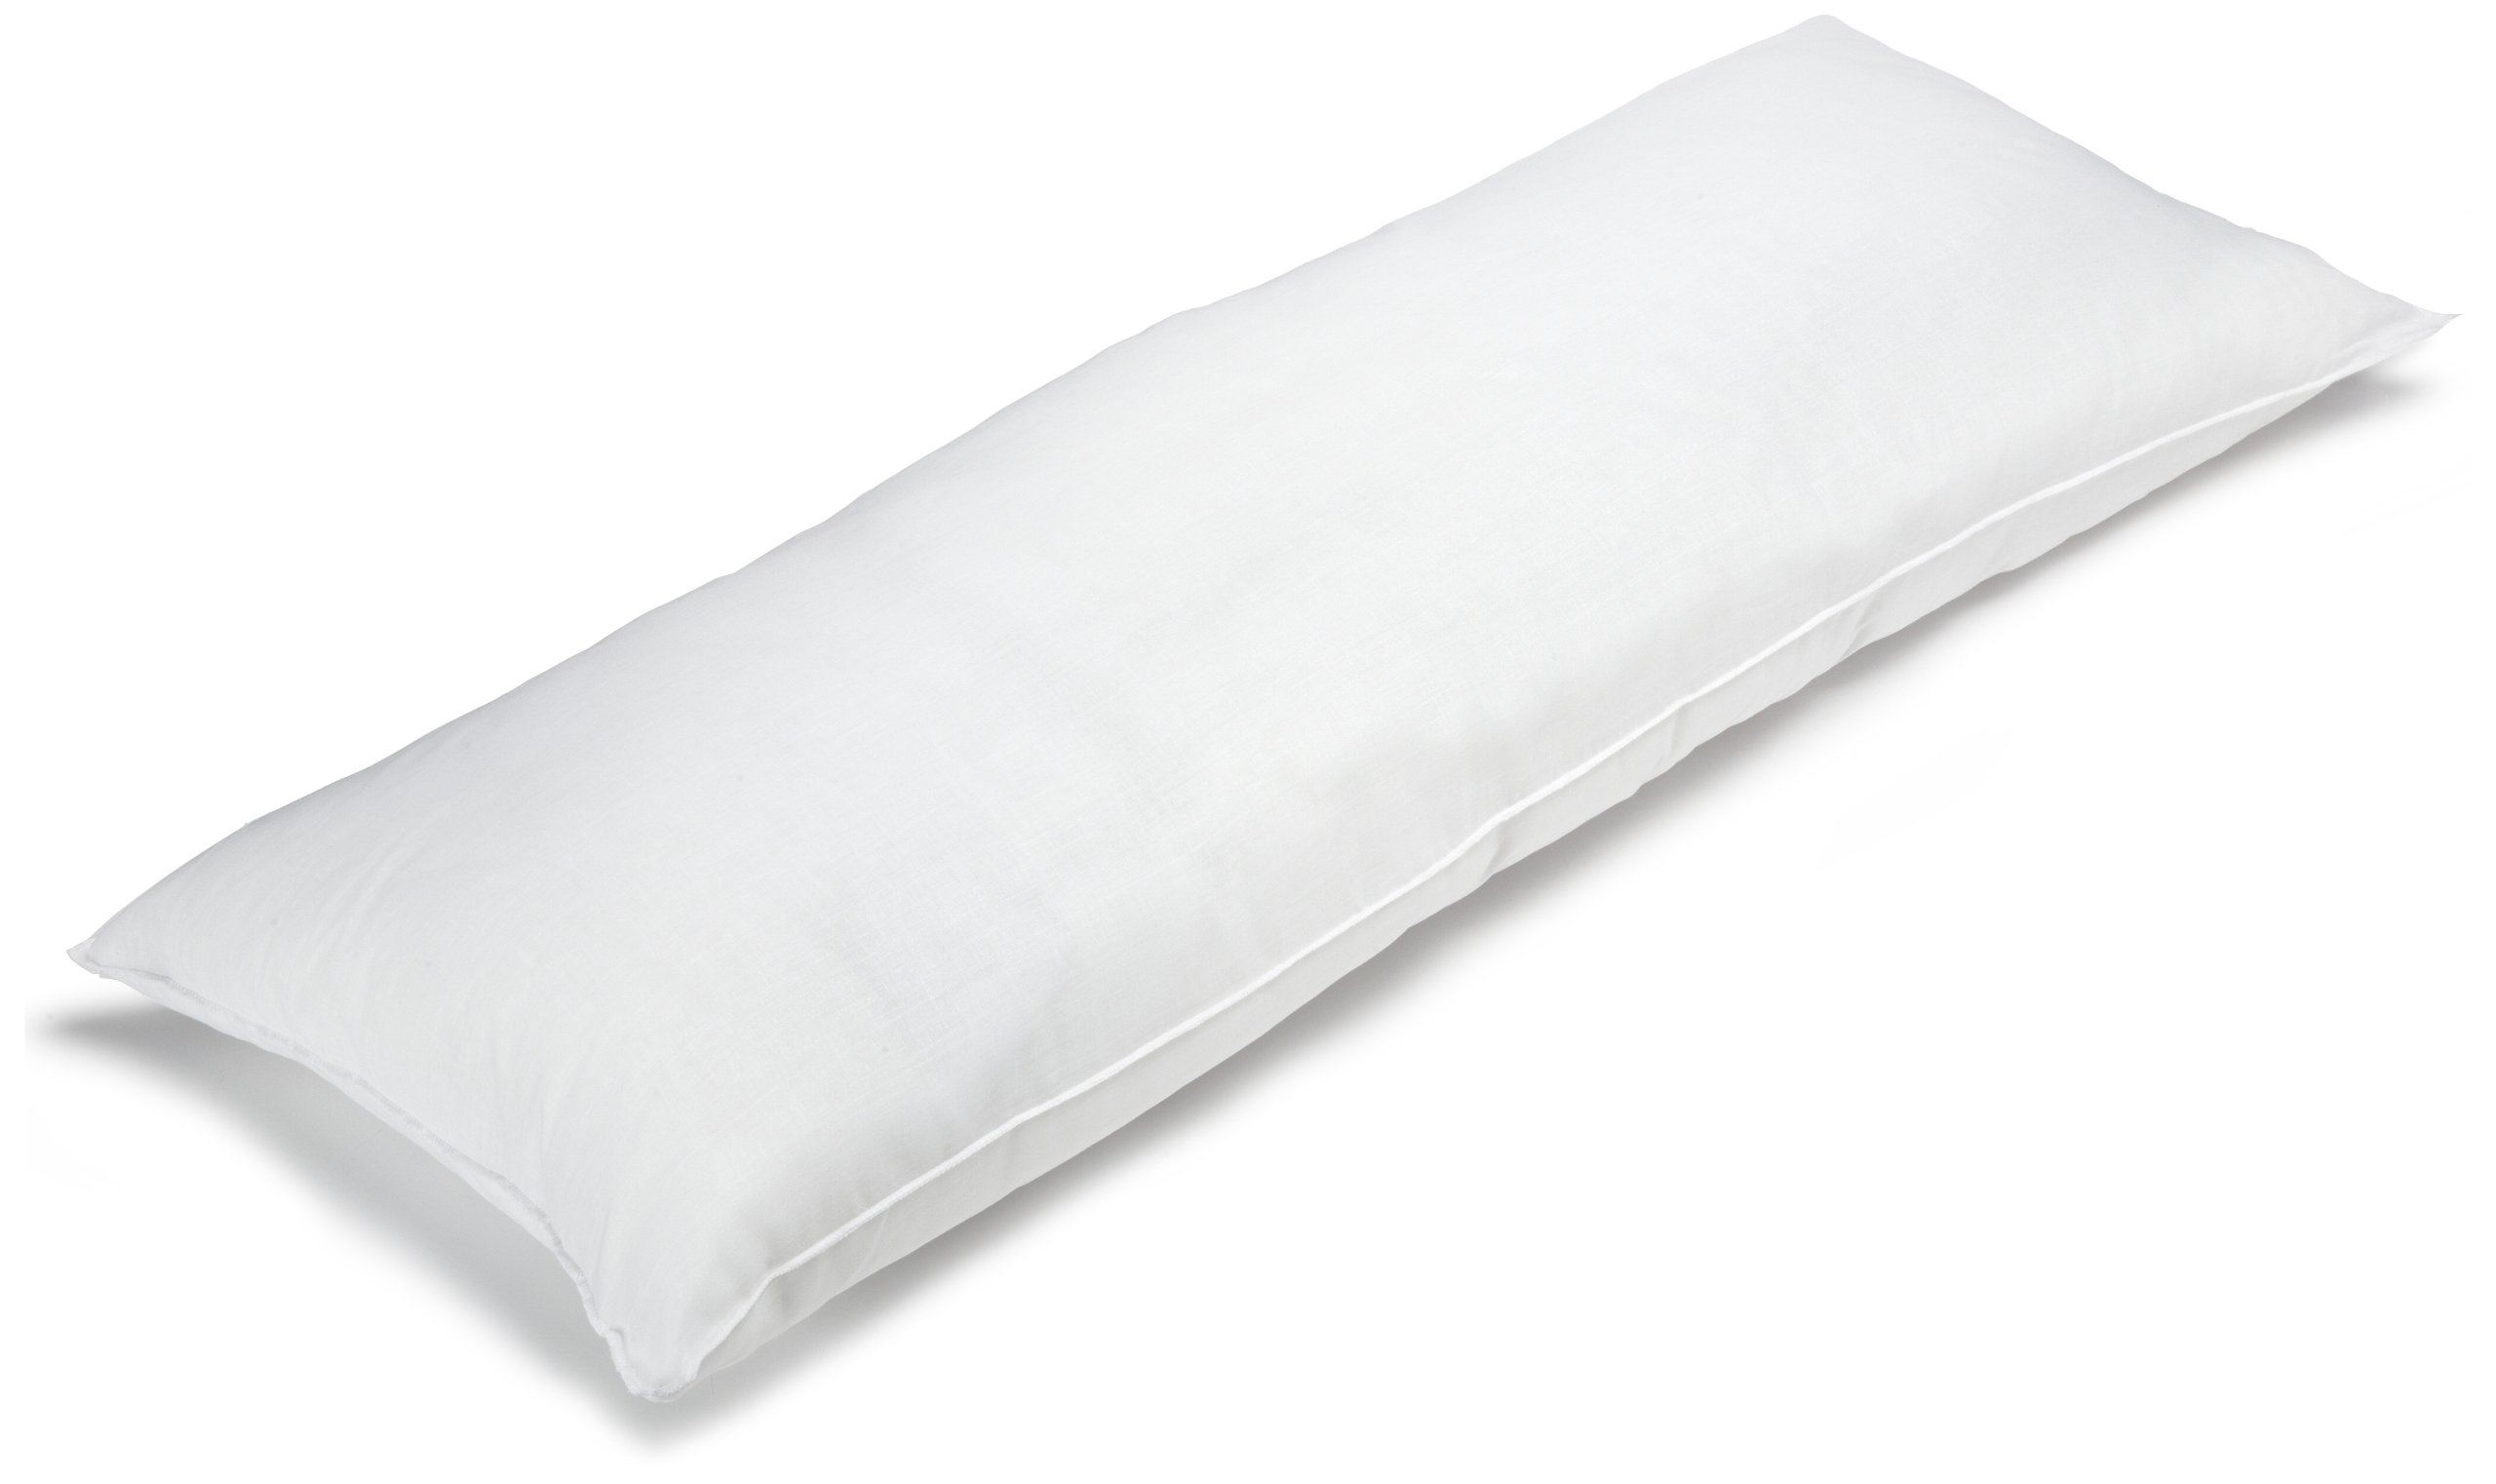 Soft-Tex SoftLOFT Body pillow, 20x54, White